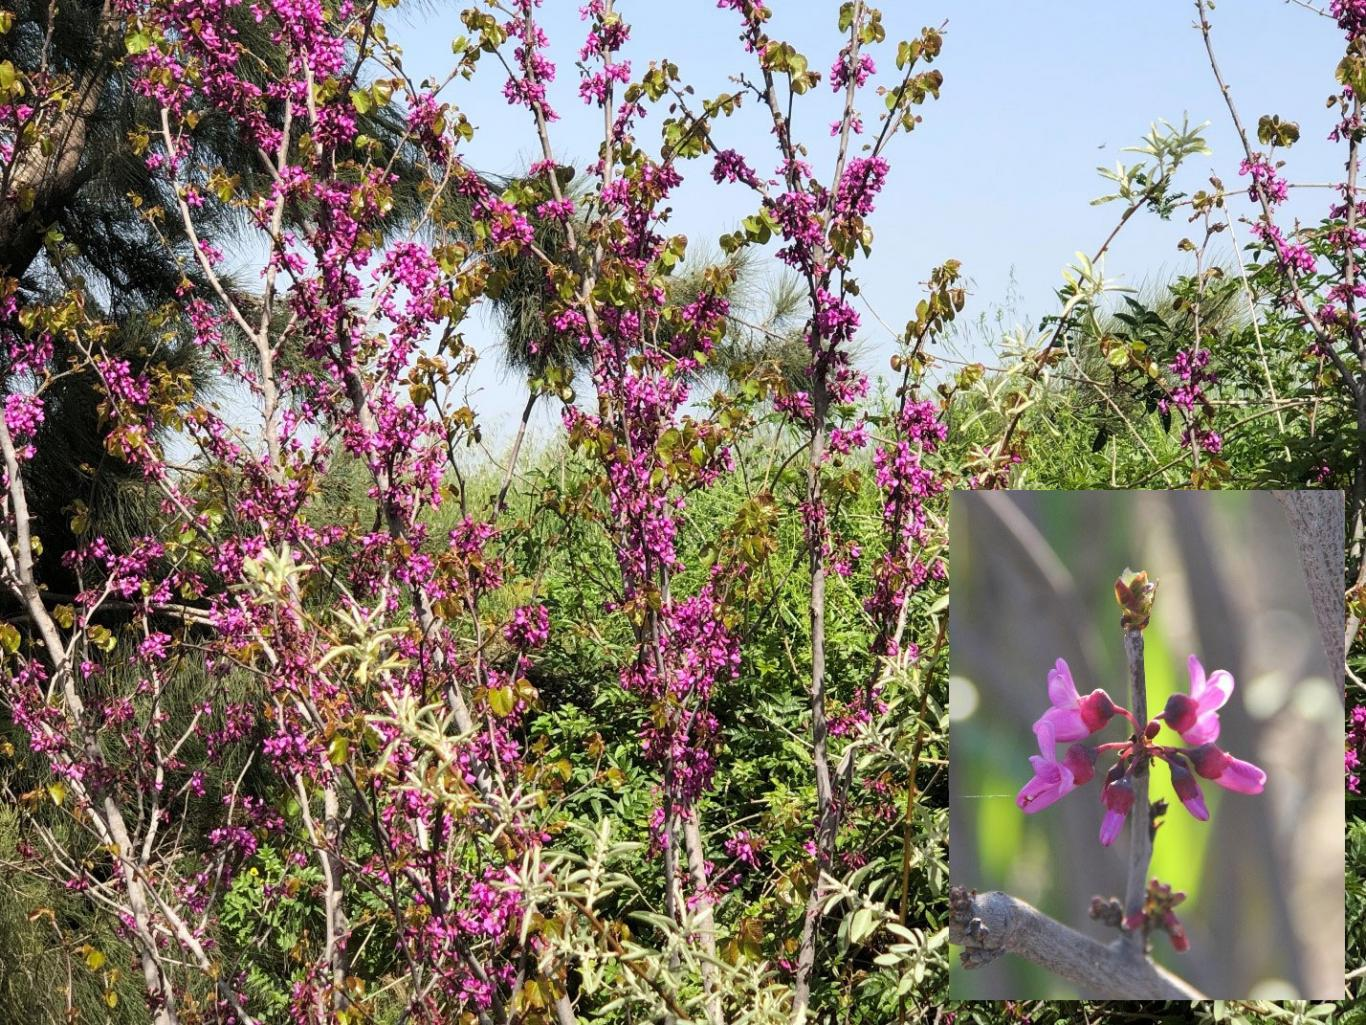 Cercis siliquastrum L. Caesalpinaceae (Red Bud, Love Tree) عروس الغابة، خزرج، زمزريق